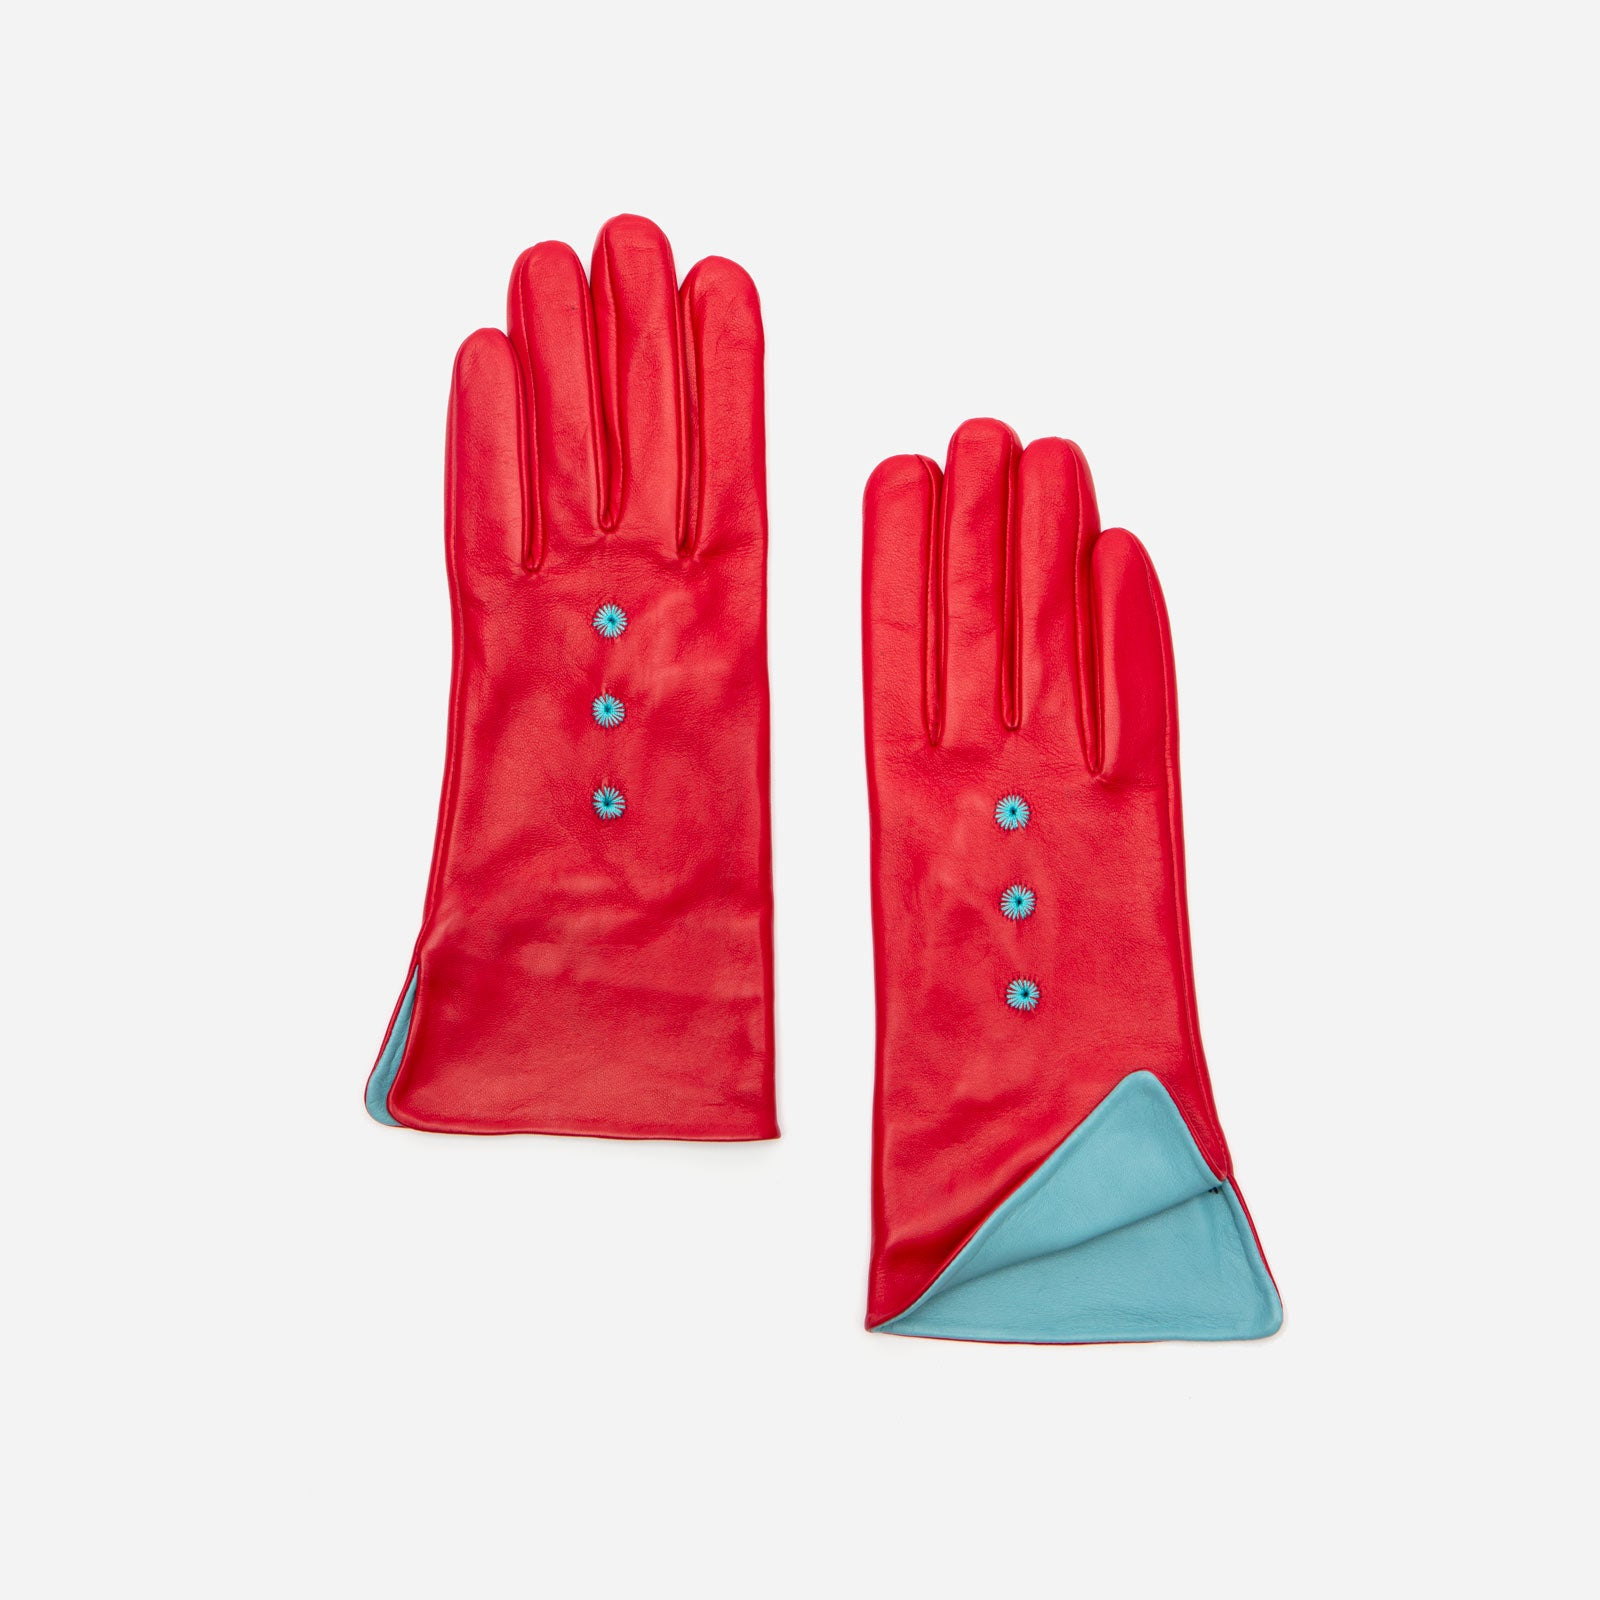 Luisa Asterisk Glove Leather Red